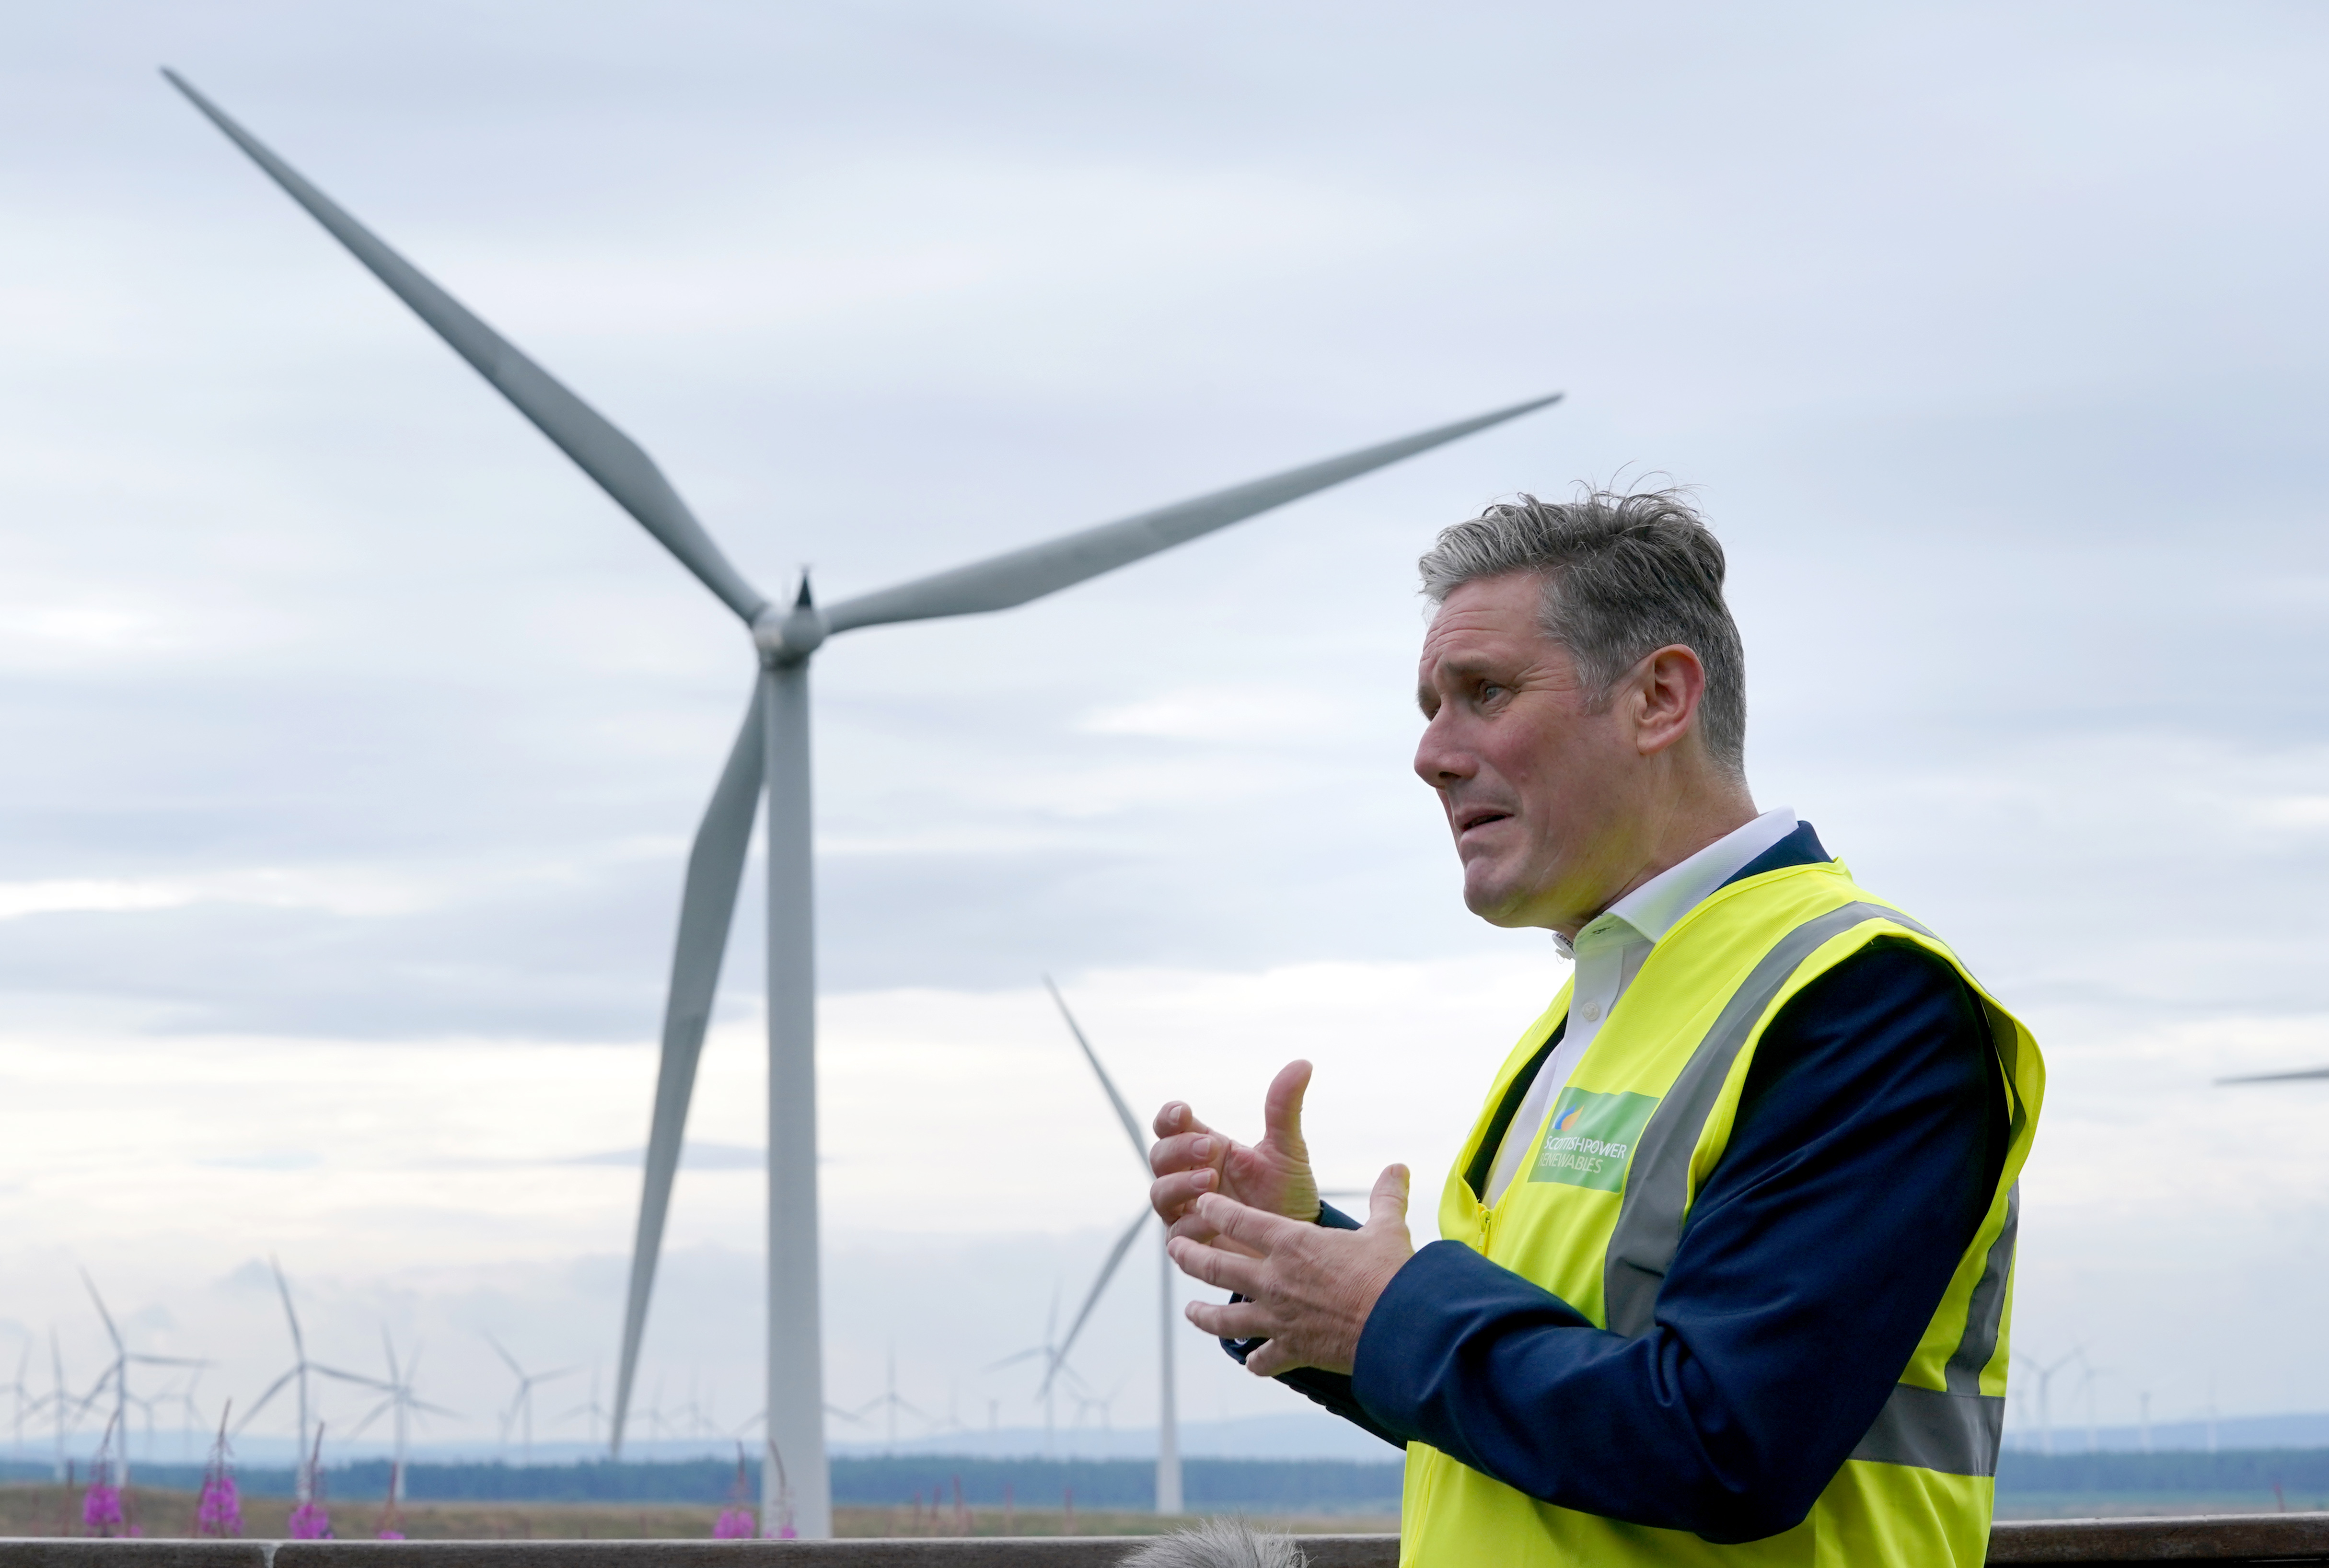 <p>Labour leader Sir Keir Starmer during a visit to Whitelees windfarm, Eaglesham, as he continues his visit to Scotland. Picture date: Thursday August 5, 2021.</p>